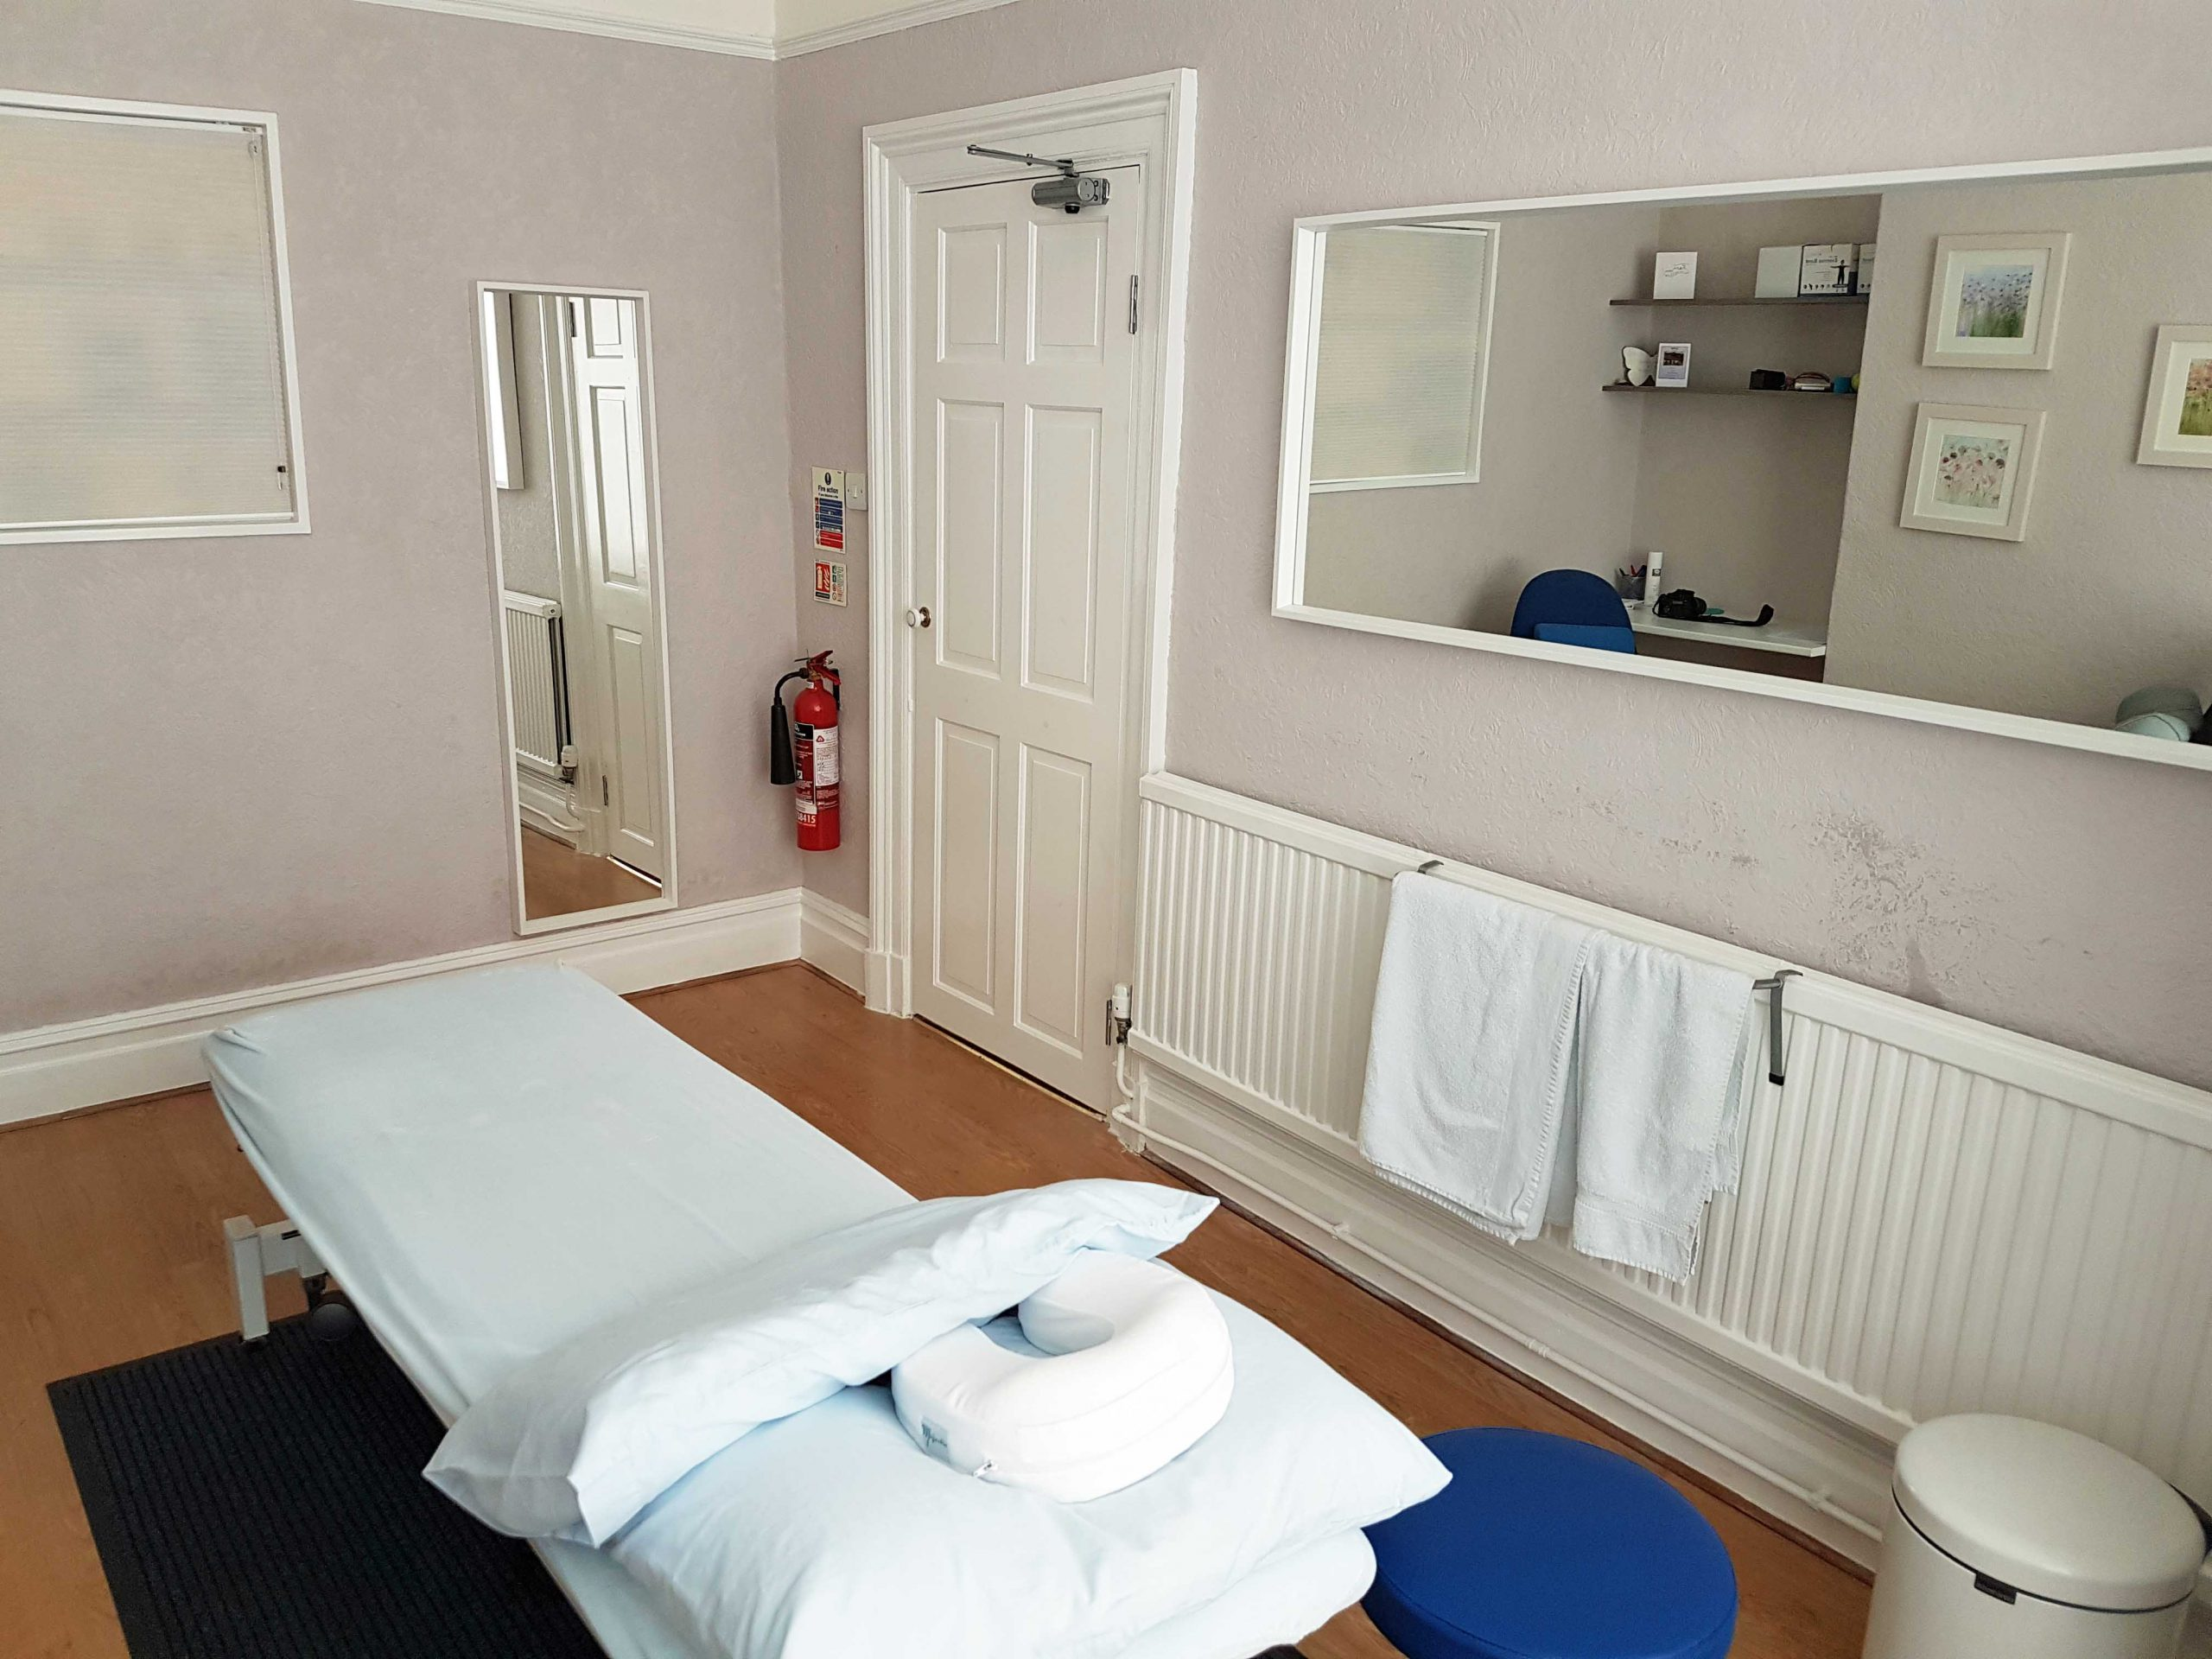 Interior of Oxford Clinic treatment room